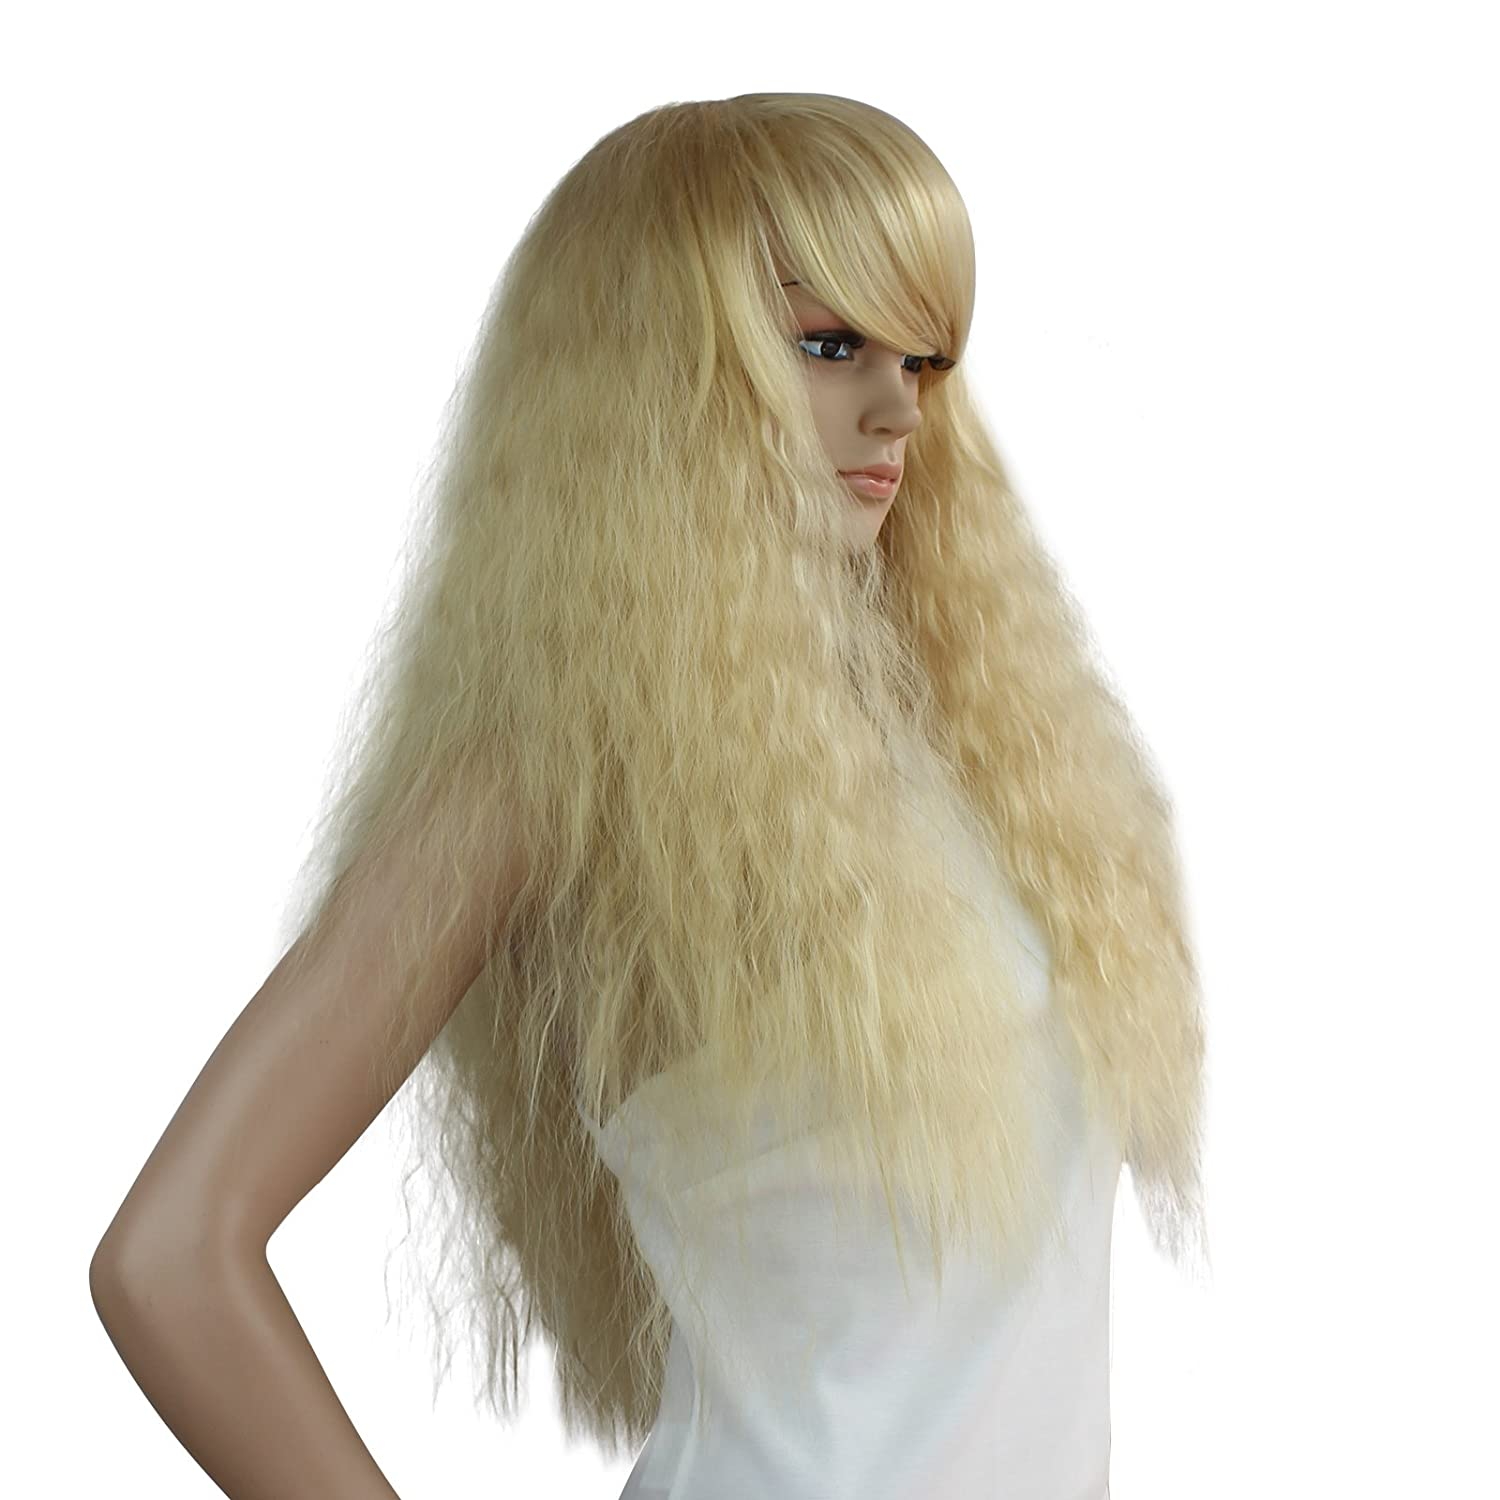 Amazon.com: eNilecor Long Curly Fluffy Healthy Full Wigs with Bangs for Women Synthetic Colorful Wig Party Costume Cosplay Wigs (Blonde): Beauty